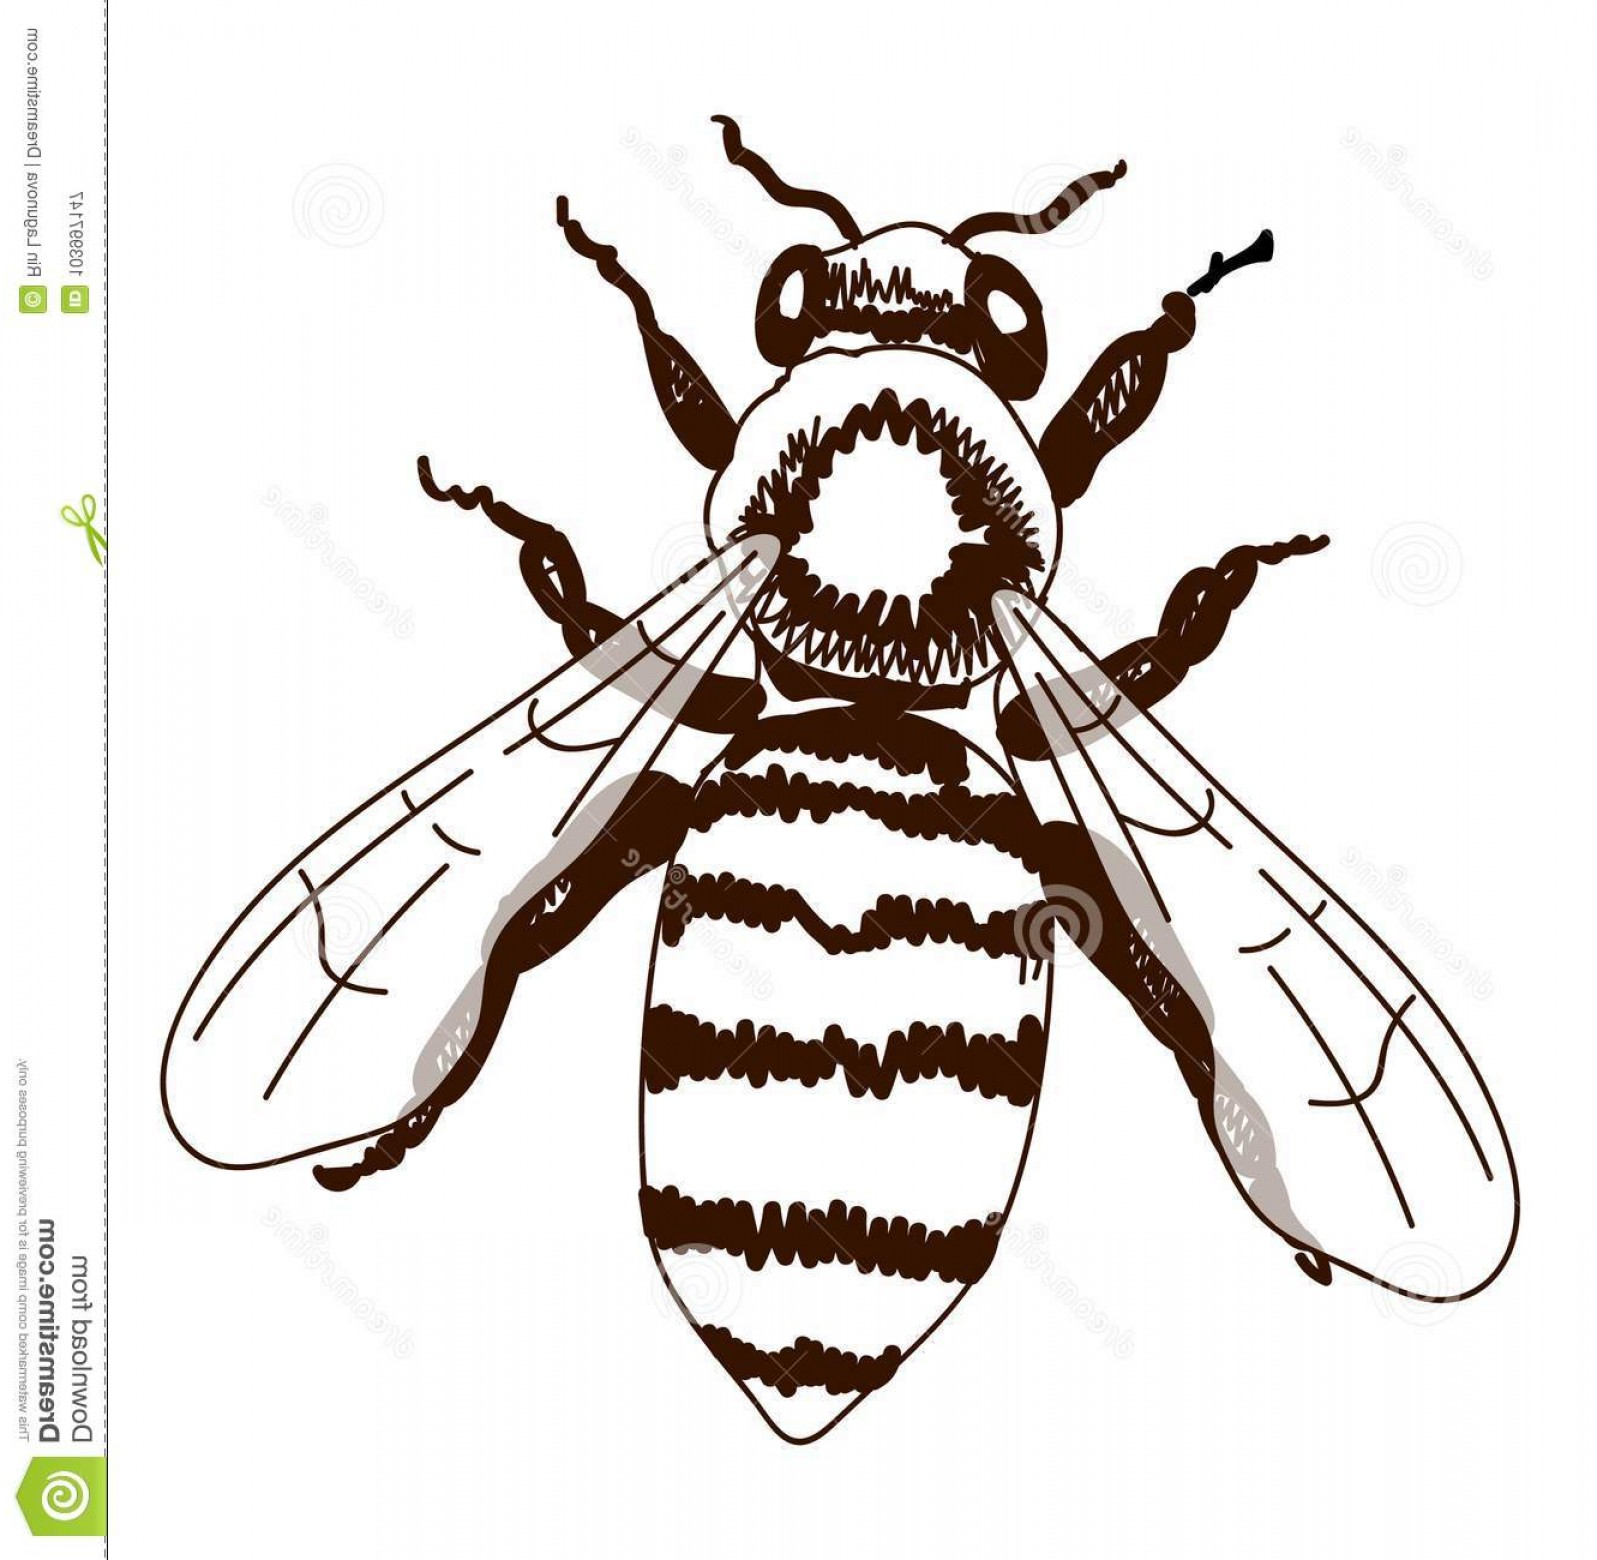 Bee Drawing Vector: Hand Drawn Bee Isolated White Outline Drawing Vector Hand Drawn Bee Isolated White Outline Drawing Vector Vintage Image